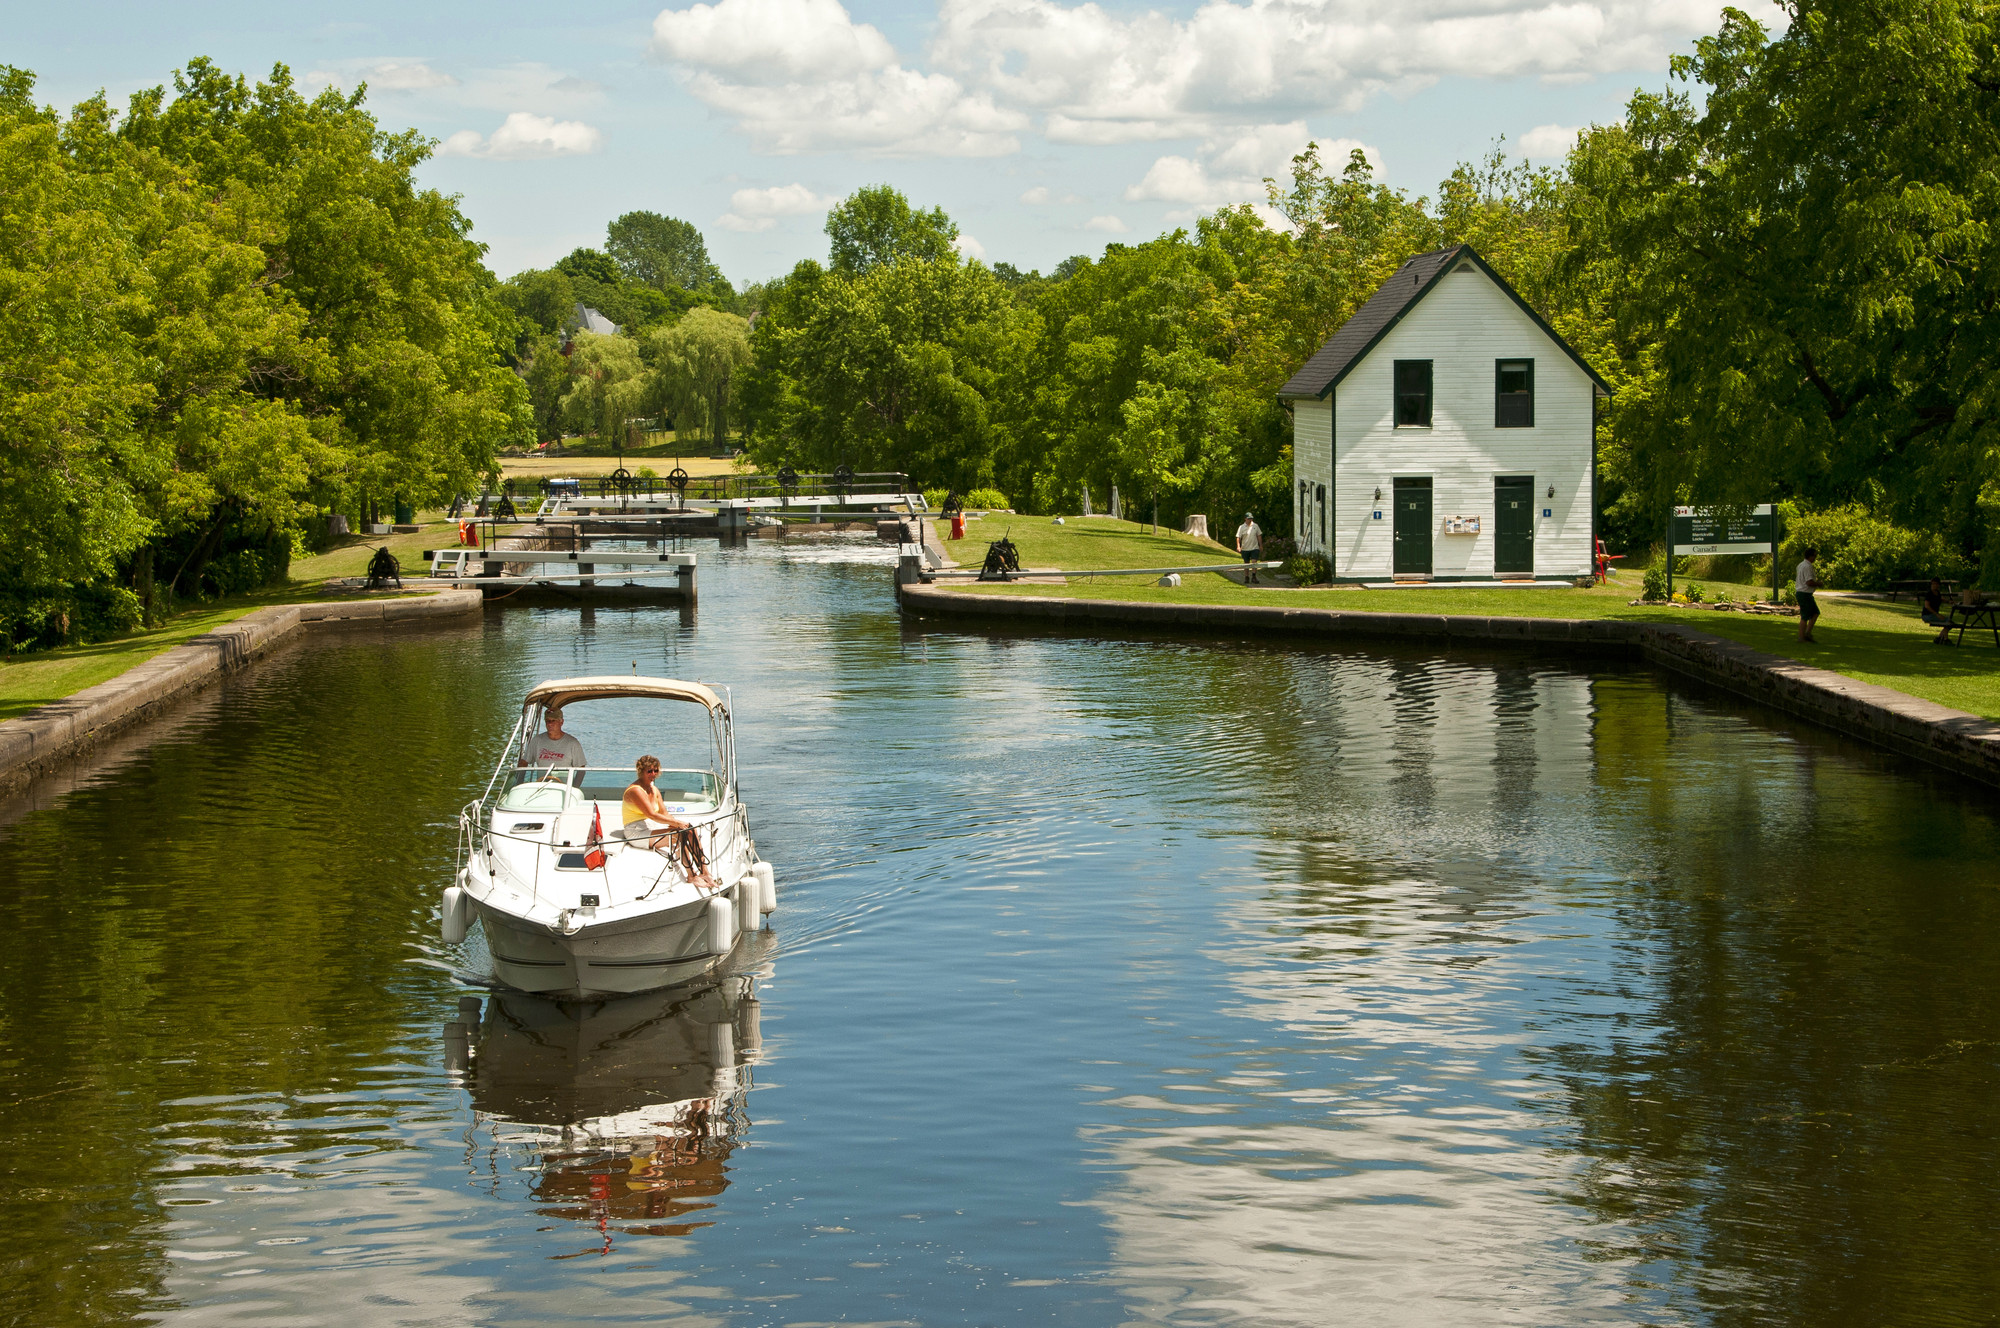 On the water in Merrickville, named Canada's most beautiful village by Communities in Bloom. (photo: The Great Waterway)